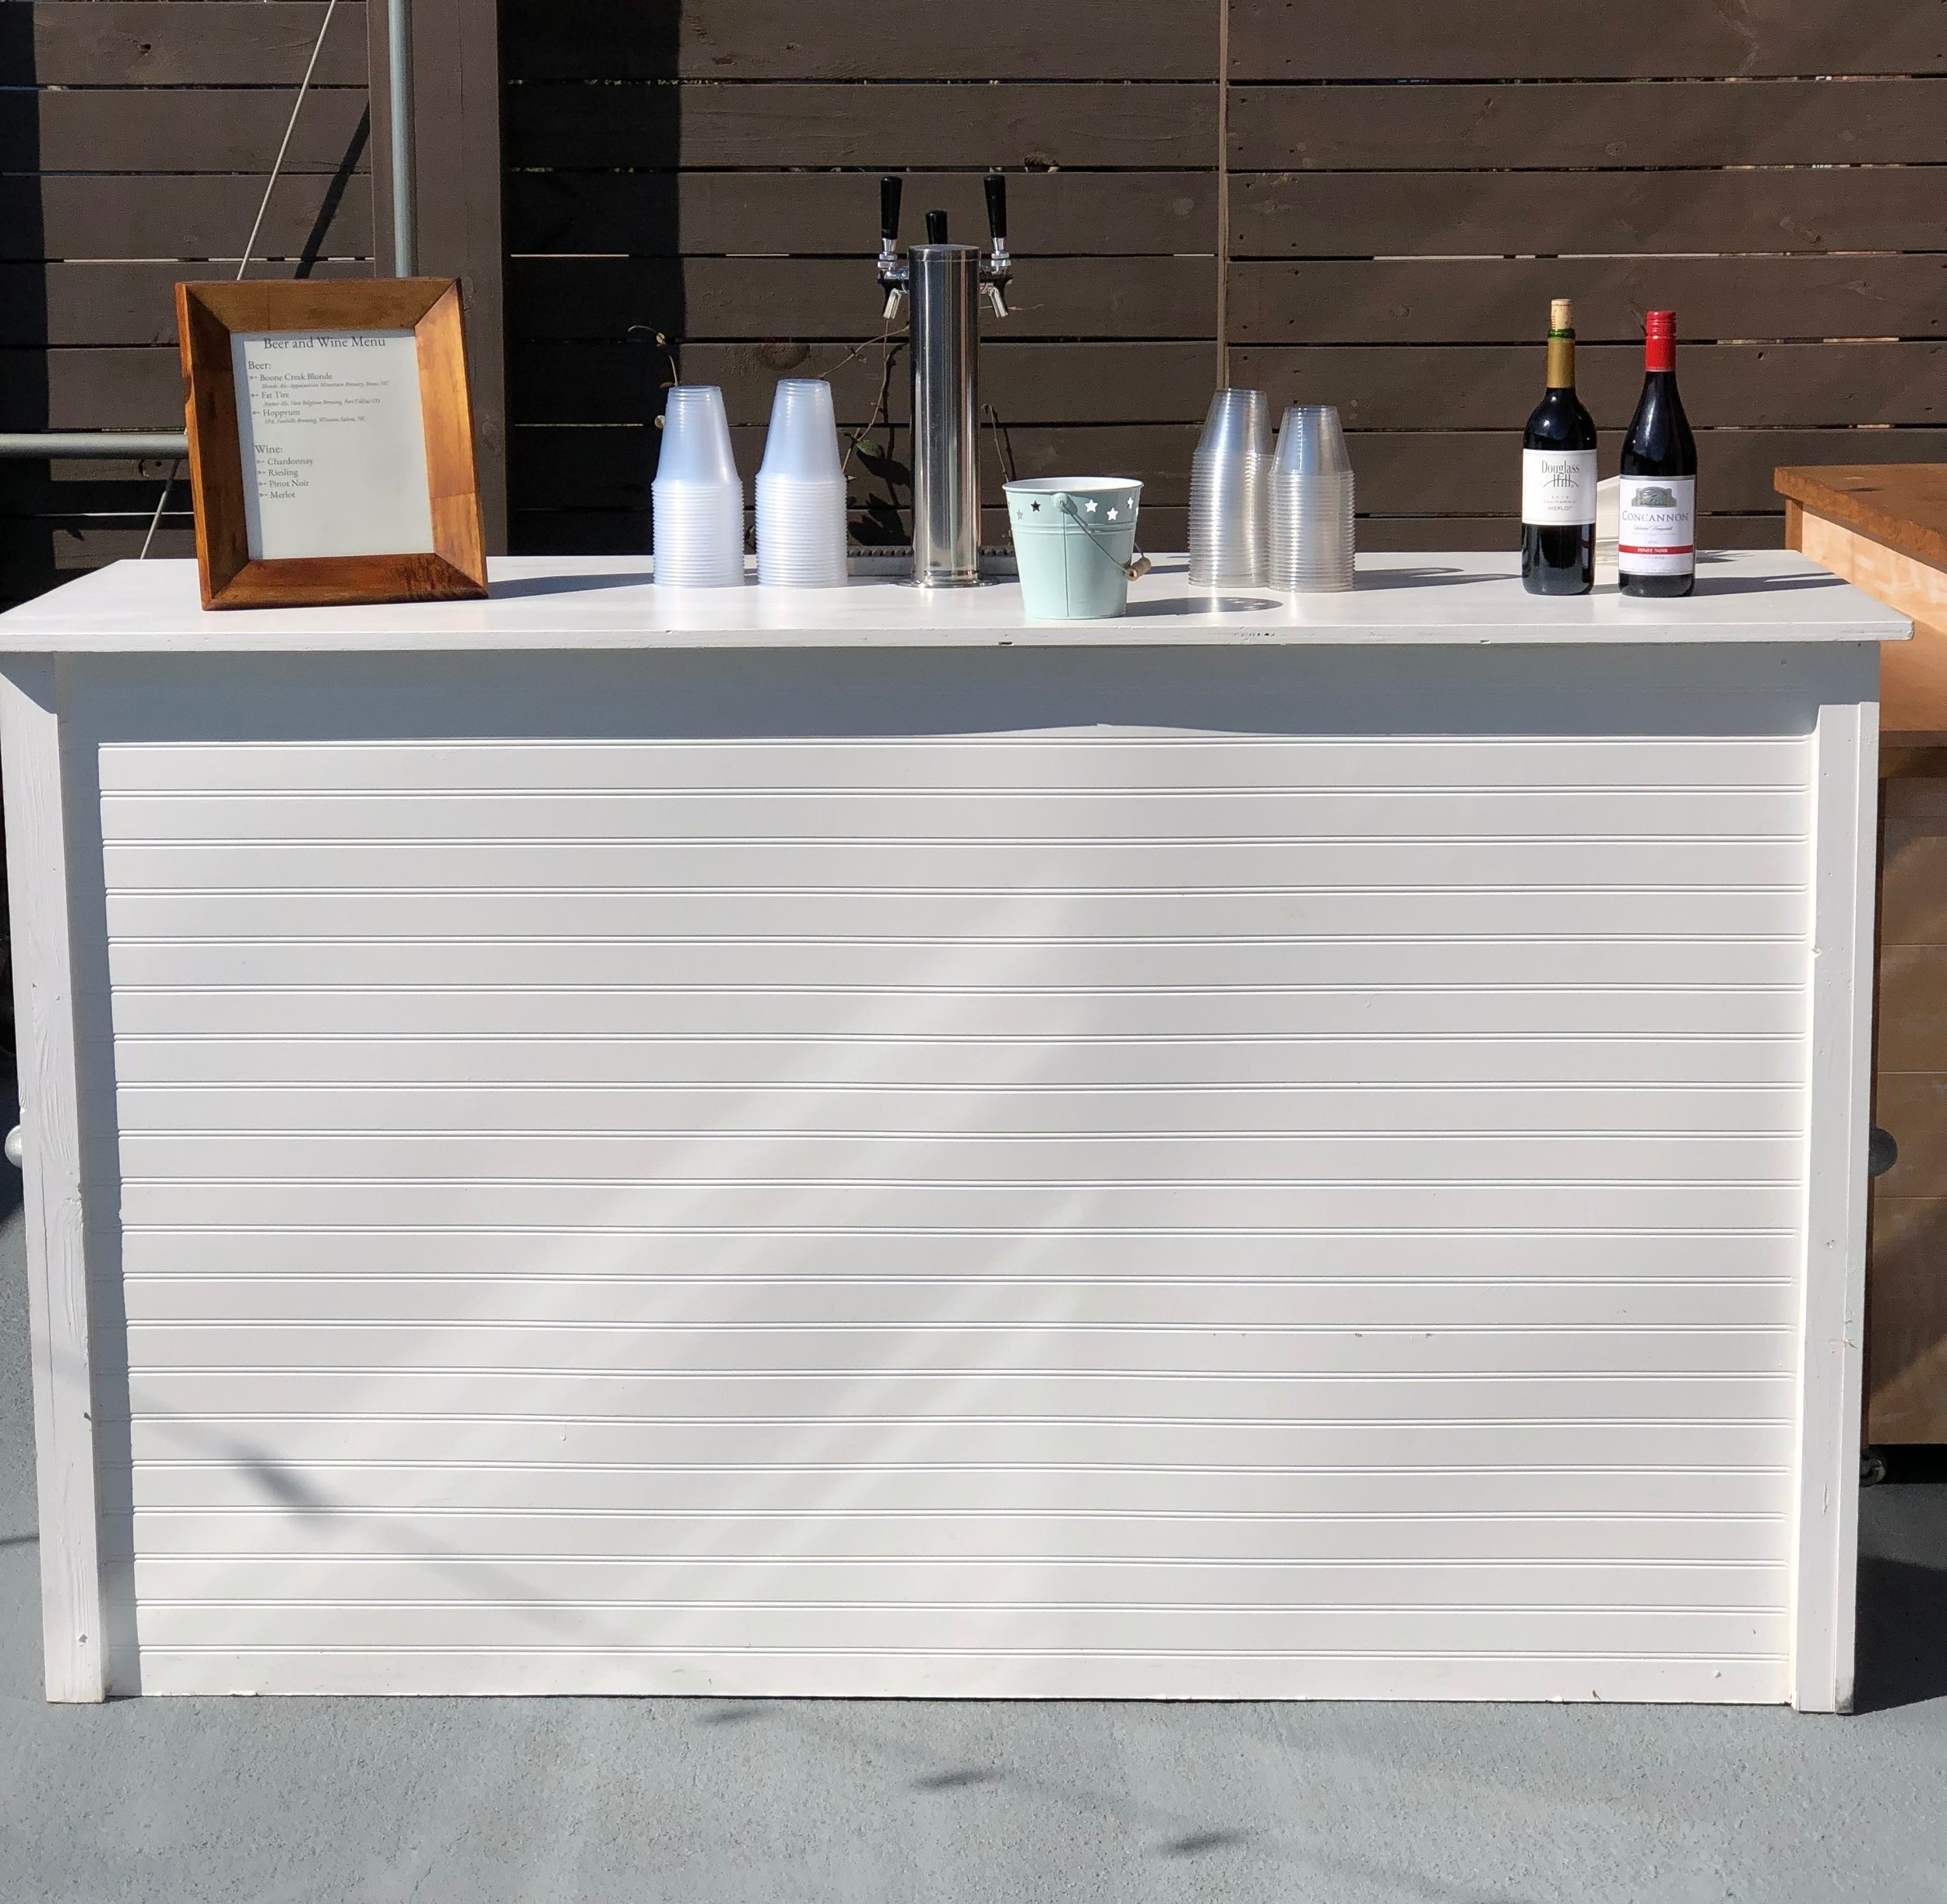 White Draft Bar - This stylish three-tap white wooden bar is the perfect addition for indoor receptions and is included with any alcohol package.